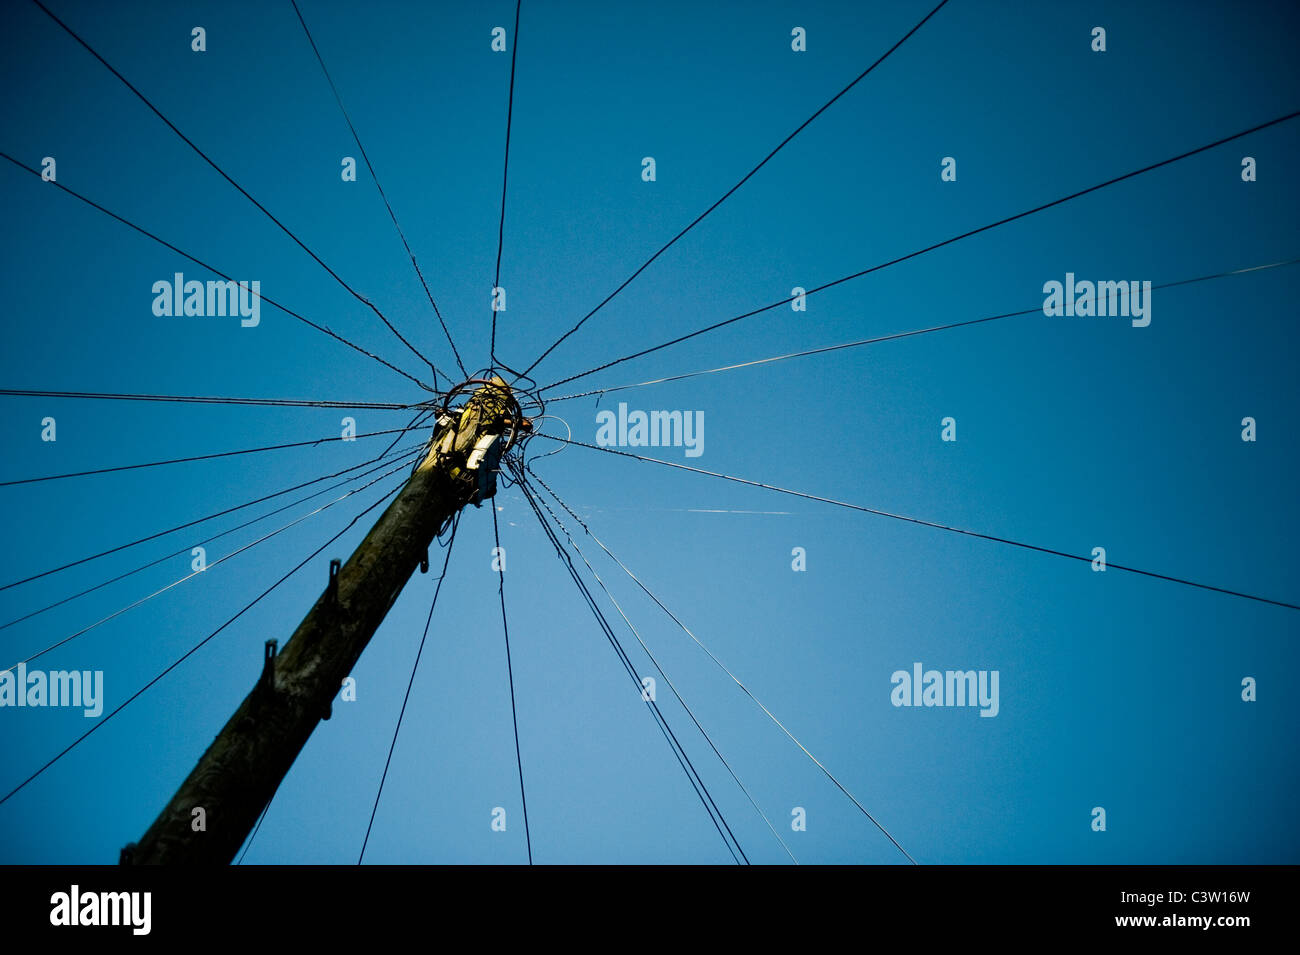 A mast for landline telephone wire connection. - Stock Image